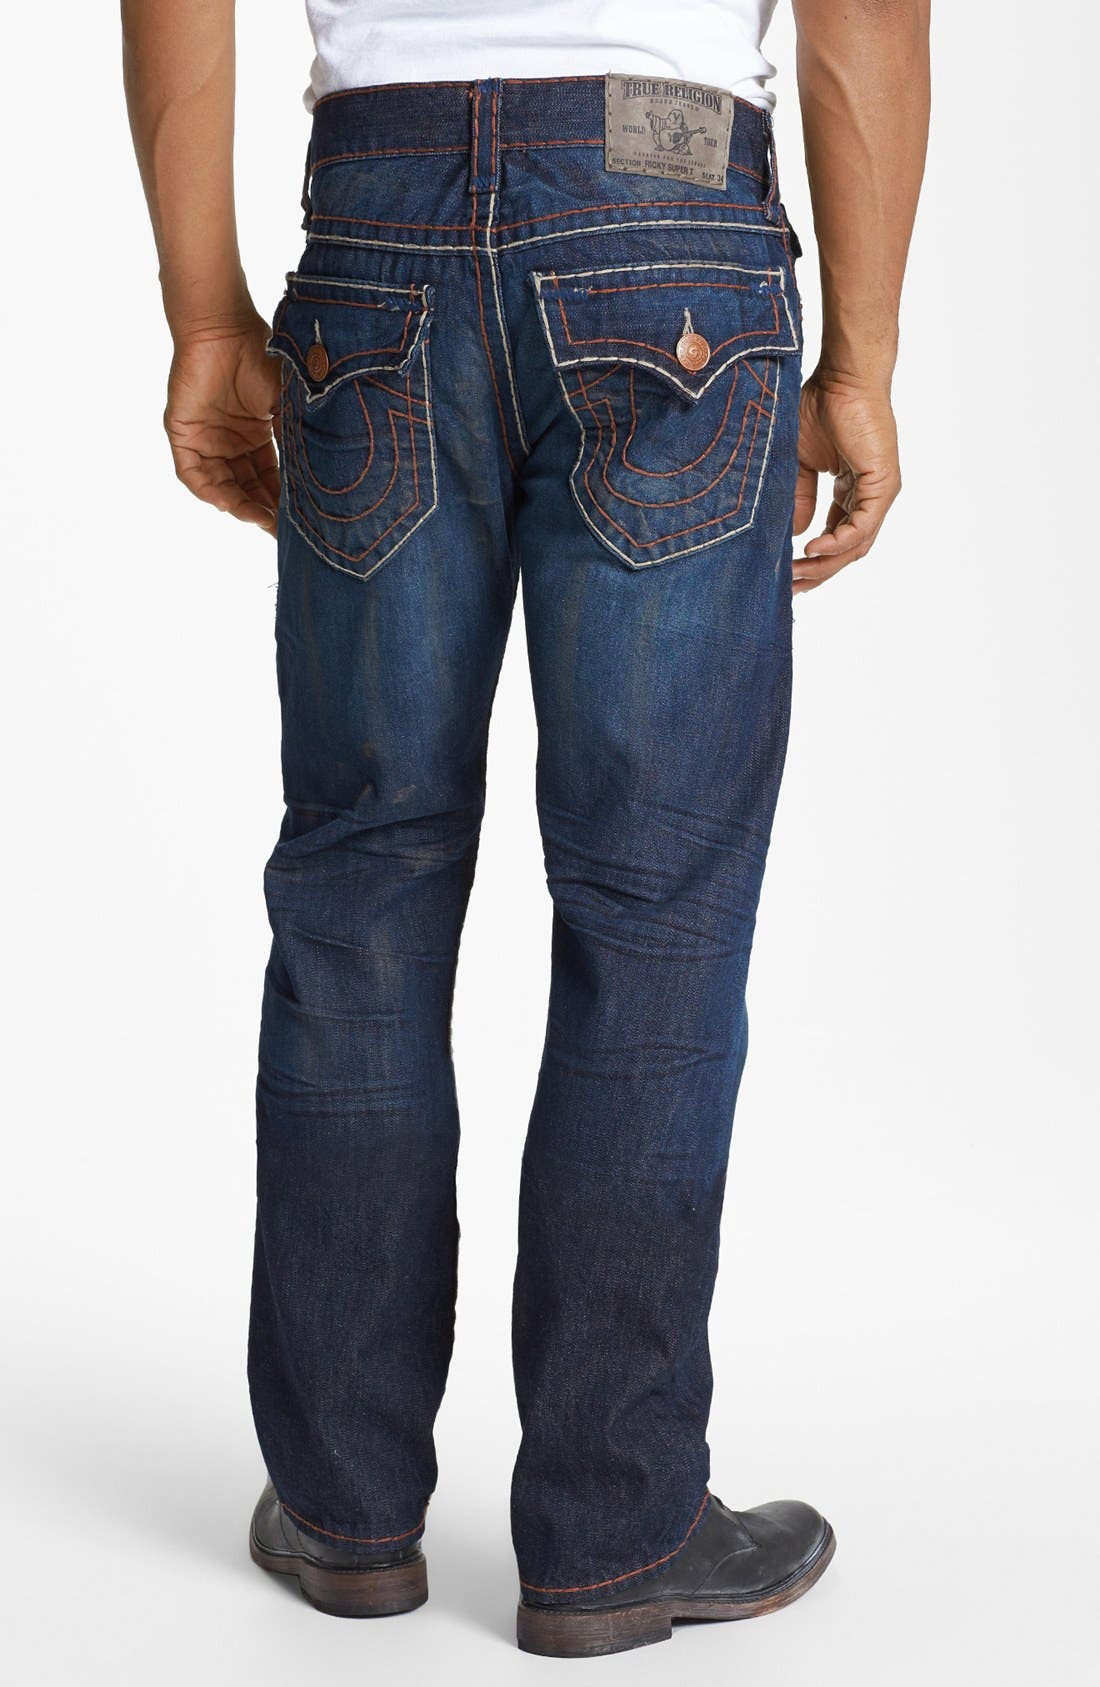 Alternate Image 1 Selected - True Religion Brand Jeans 'Ricky' Straight Leg Jeans (Hideout)